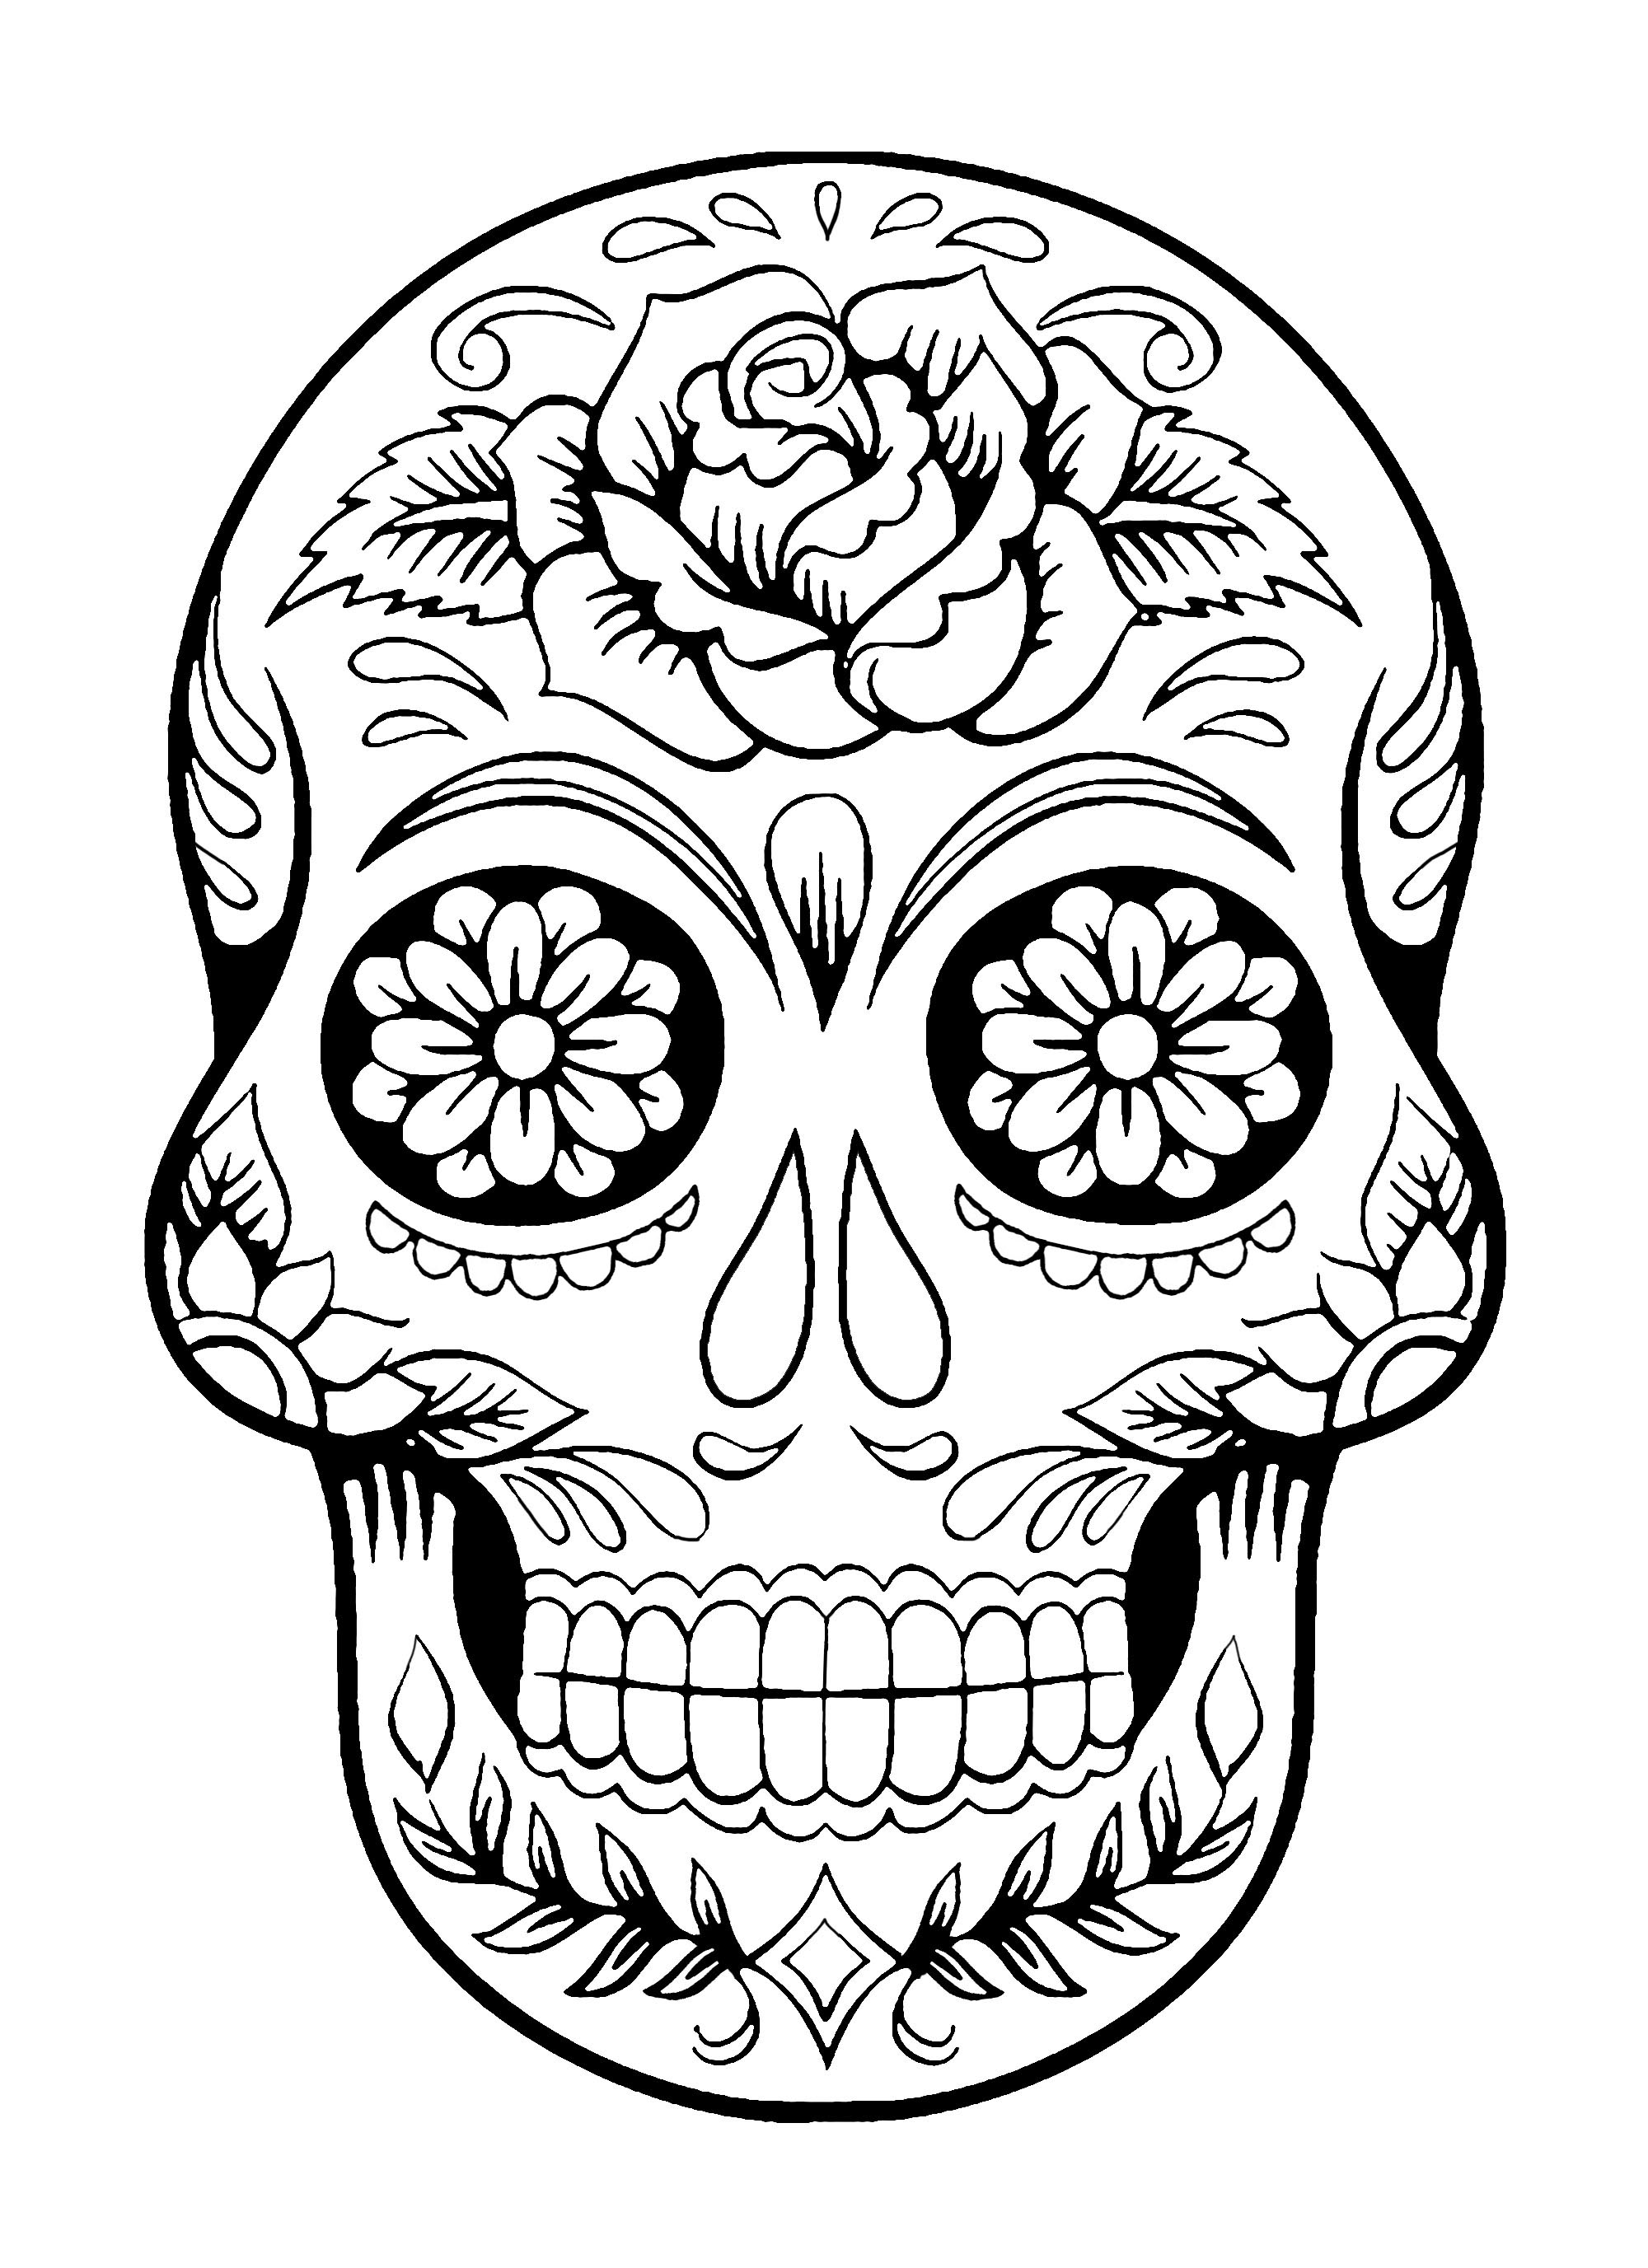 el coloring pages - photo#6